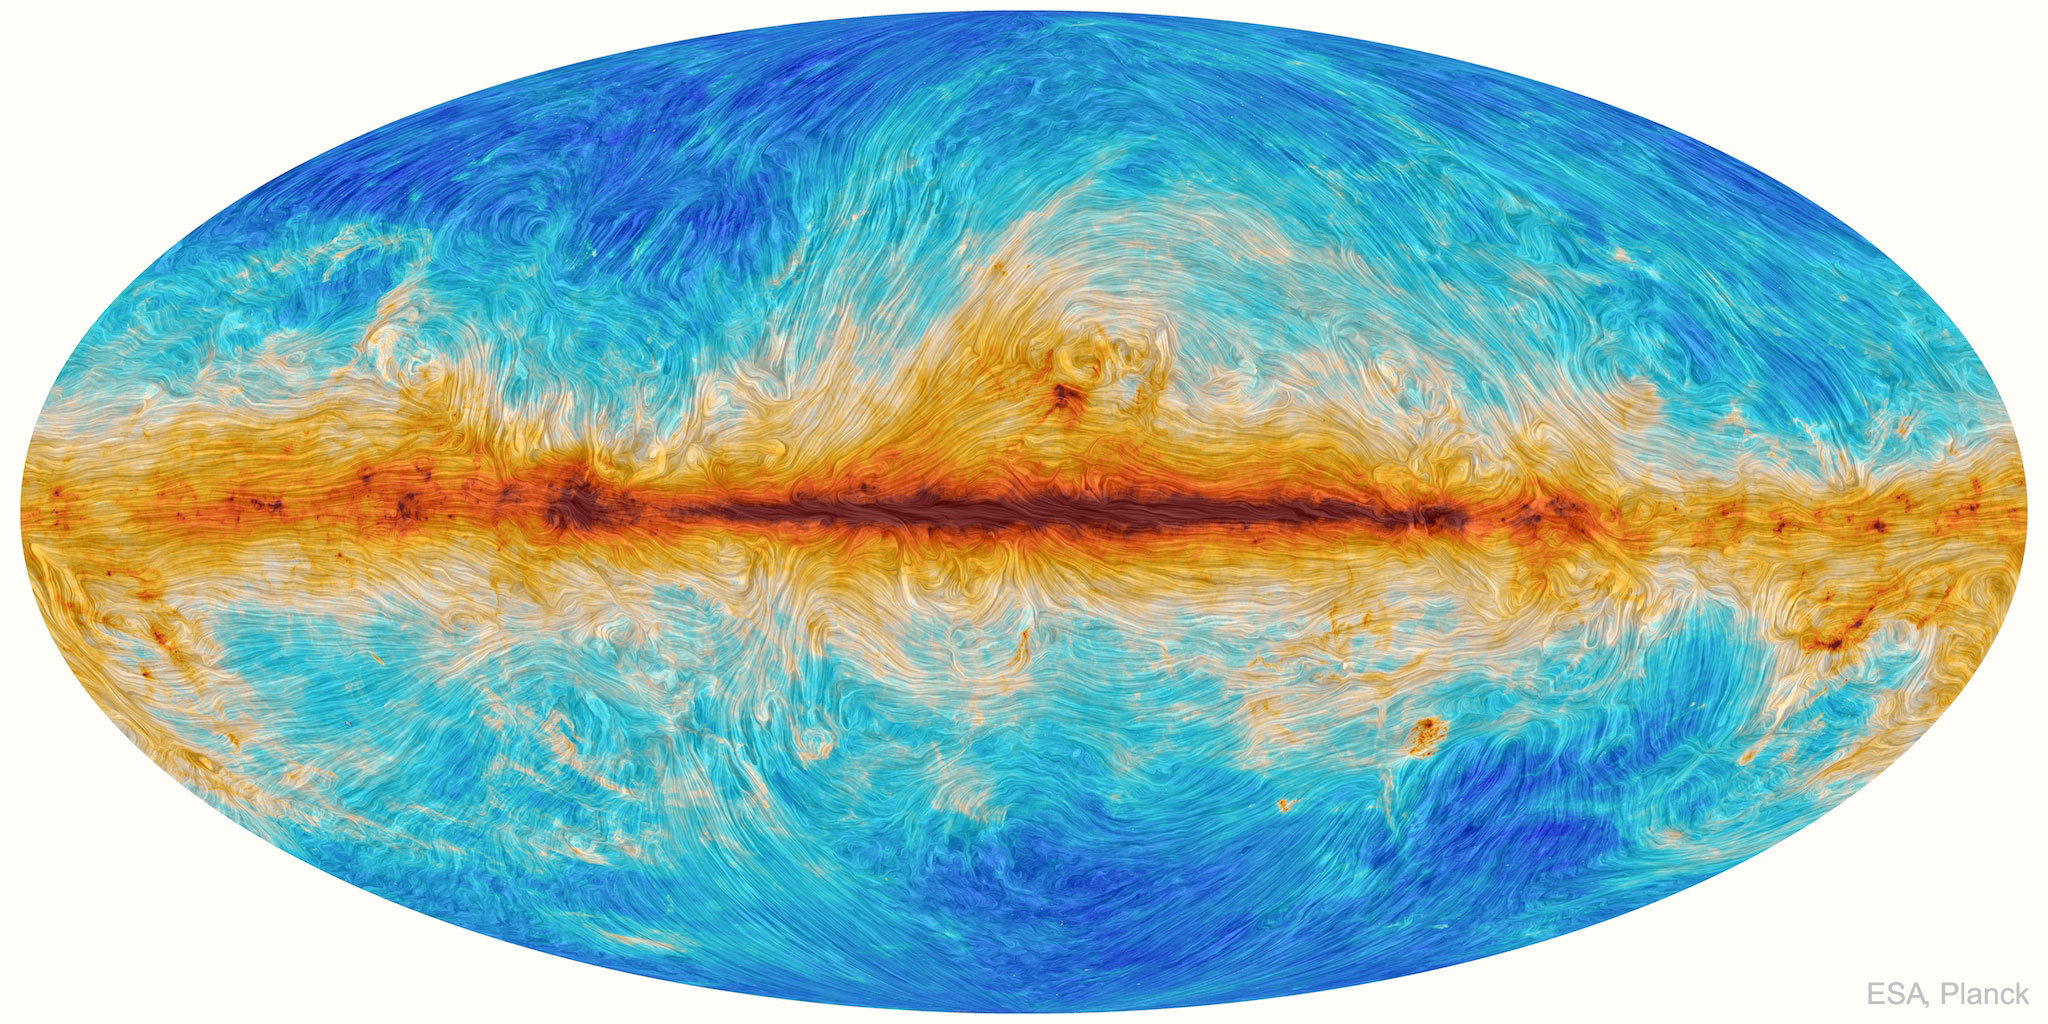 Magnetic Streamlines of the Milky Way